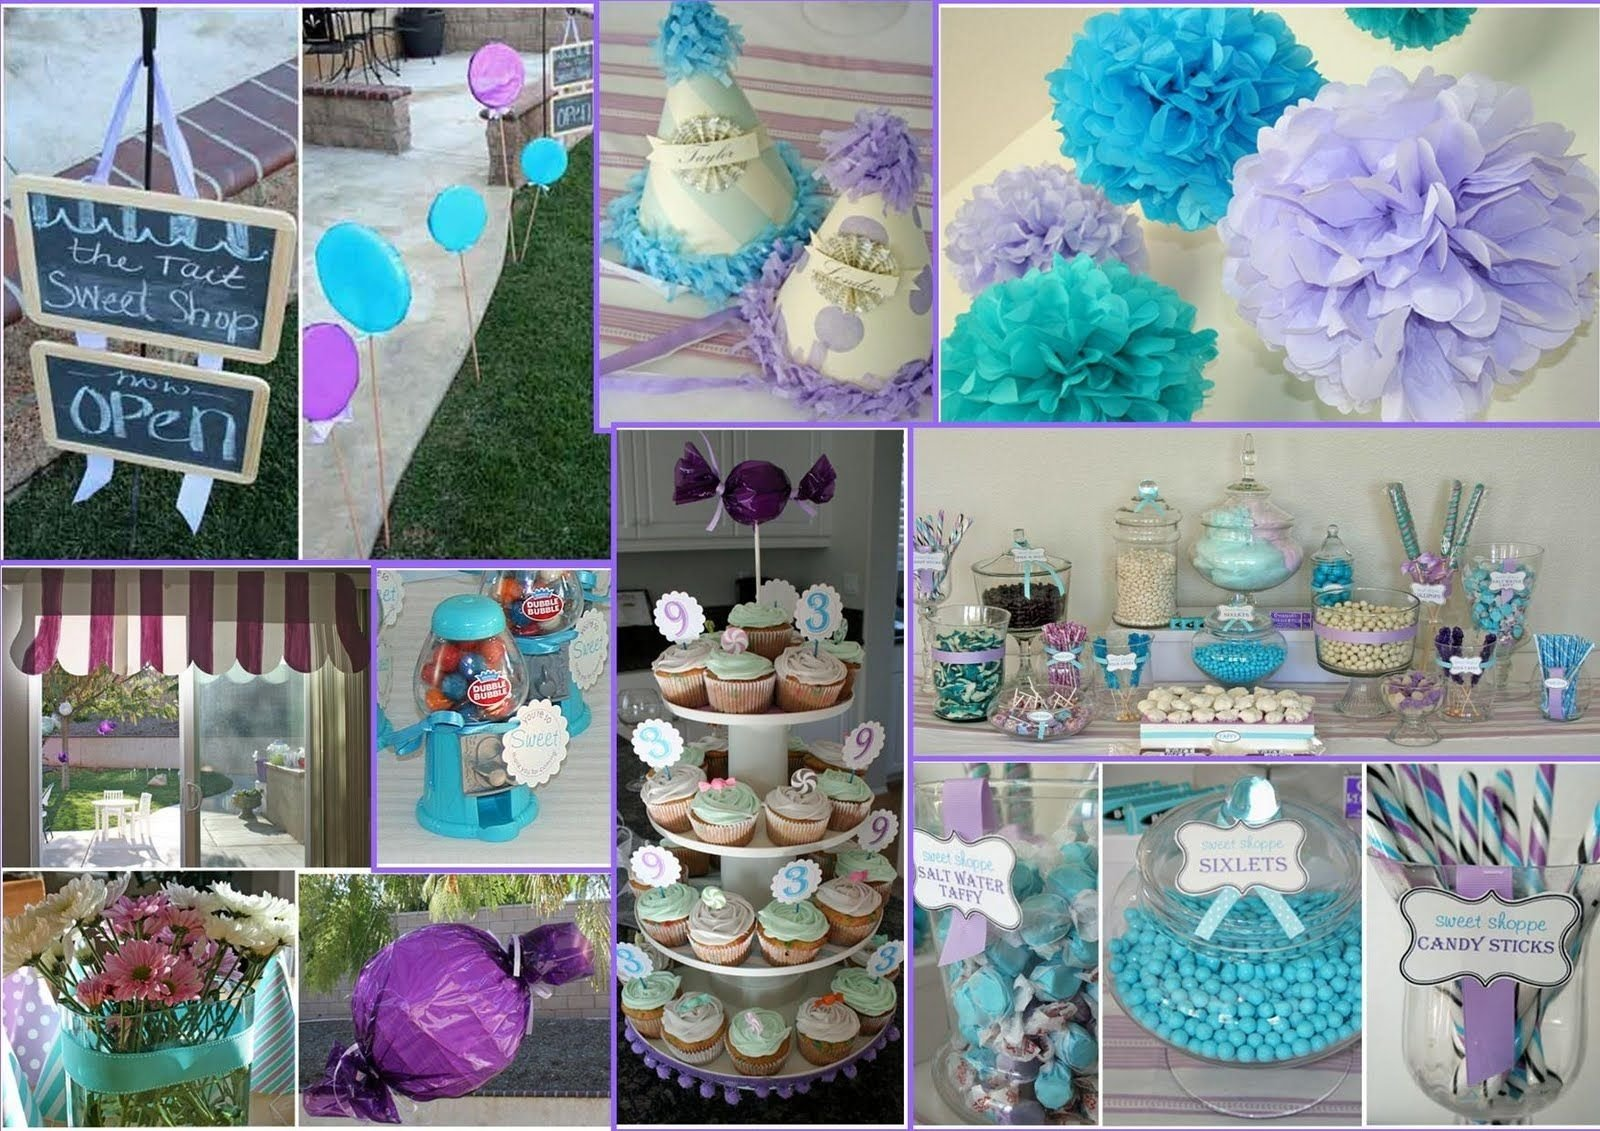 10 Most Recommended 16 Birthday Party Ideas For Girls sweet 16 birthday party ideas girls for at home labels childrens 3 2021